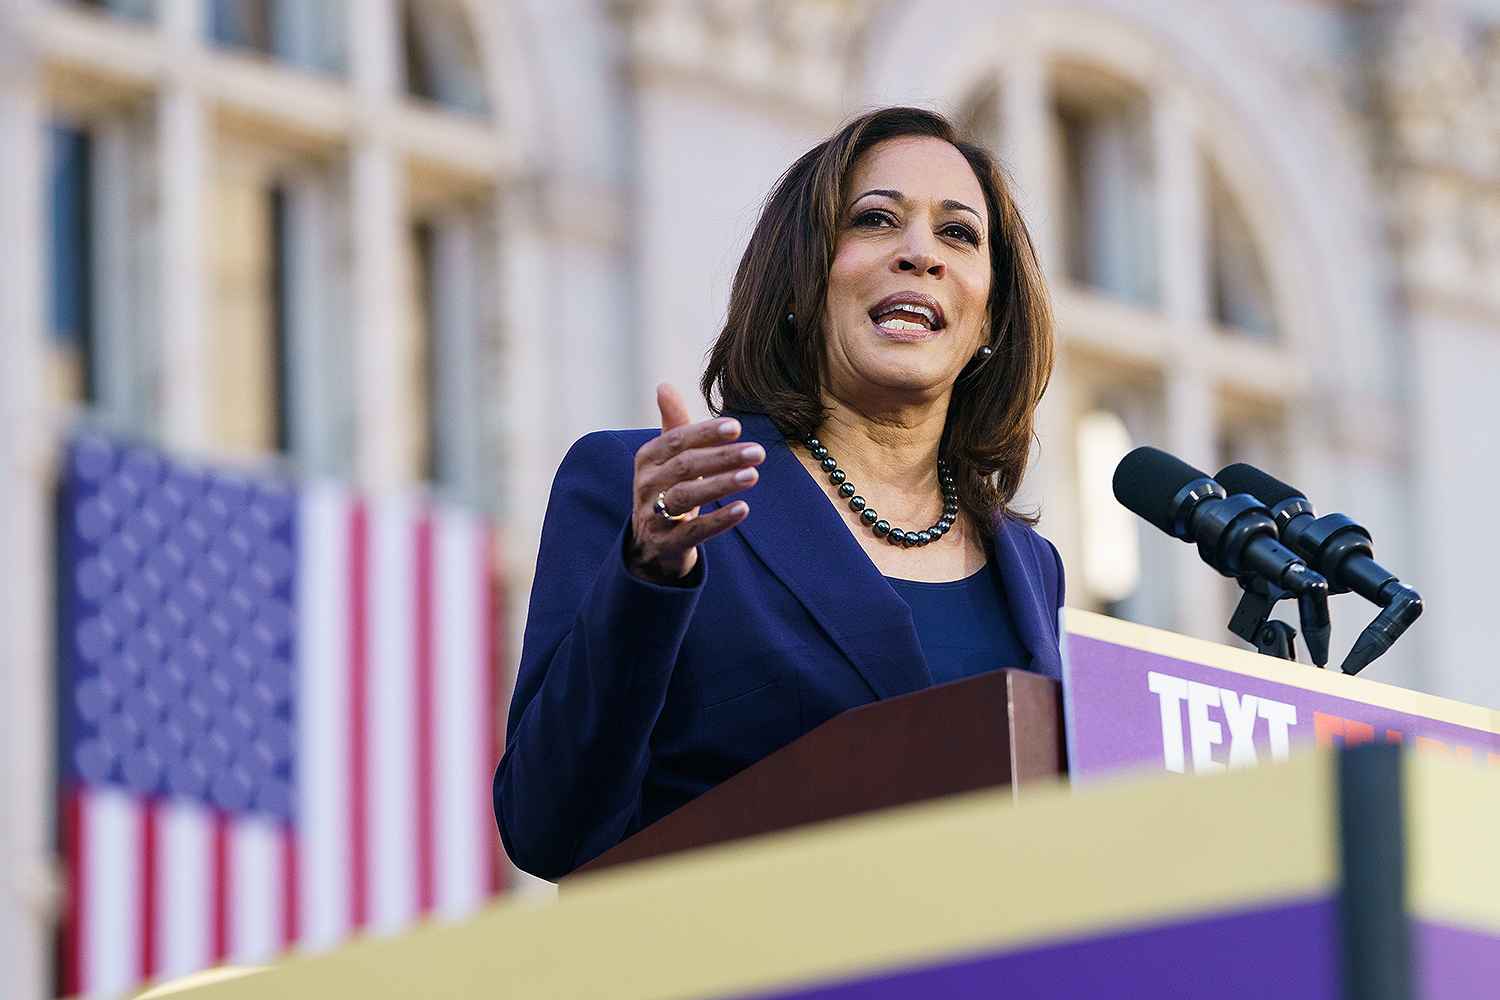 OAKLAND, CA - JANUARY 27: Senator Kamala Harris (D-CA) speaks to her supporters during her presidential campaign launch rally in Frank H. Ogawa Plaza on January 27, 2019, in Oakland, California. Twenty thousand people turned out to see the Oakland native launch her presidential campaign in front of Oakland City Hall.